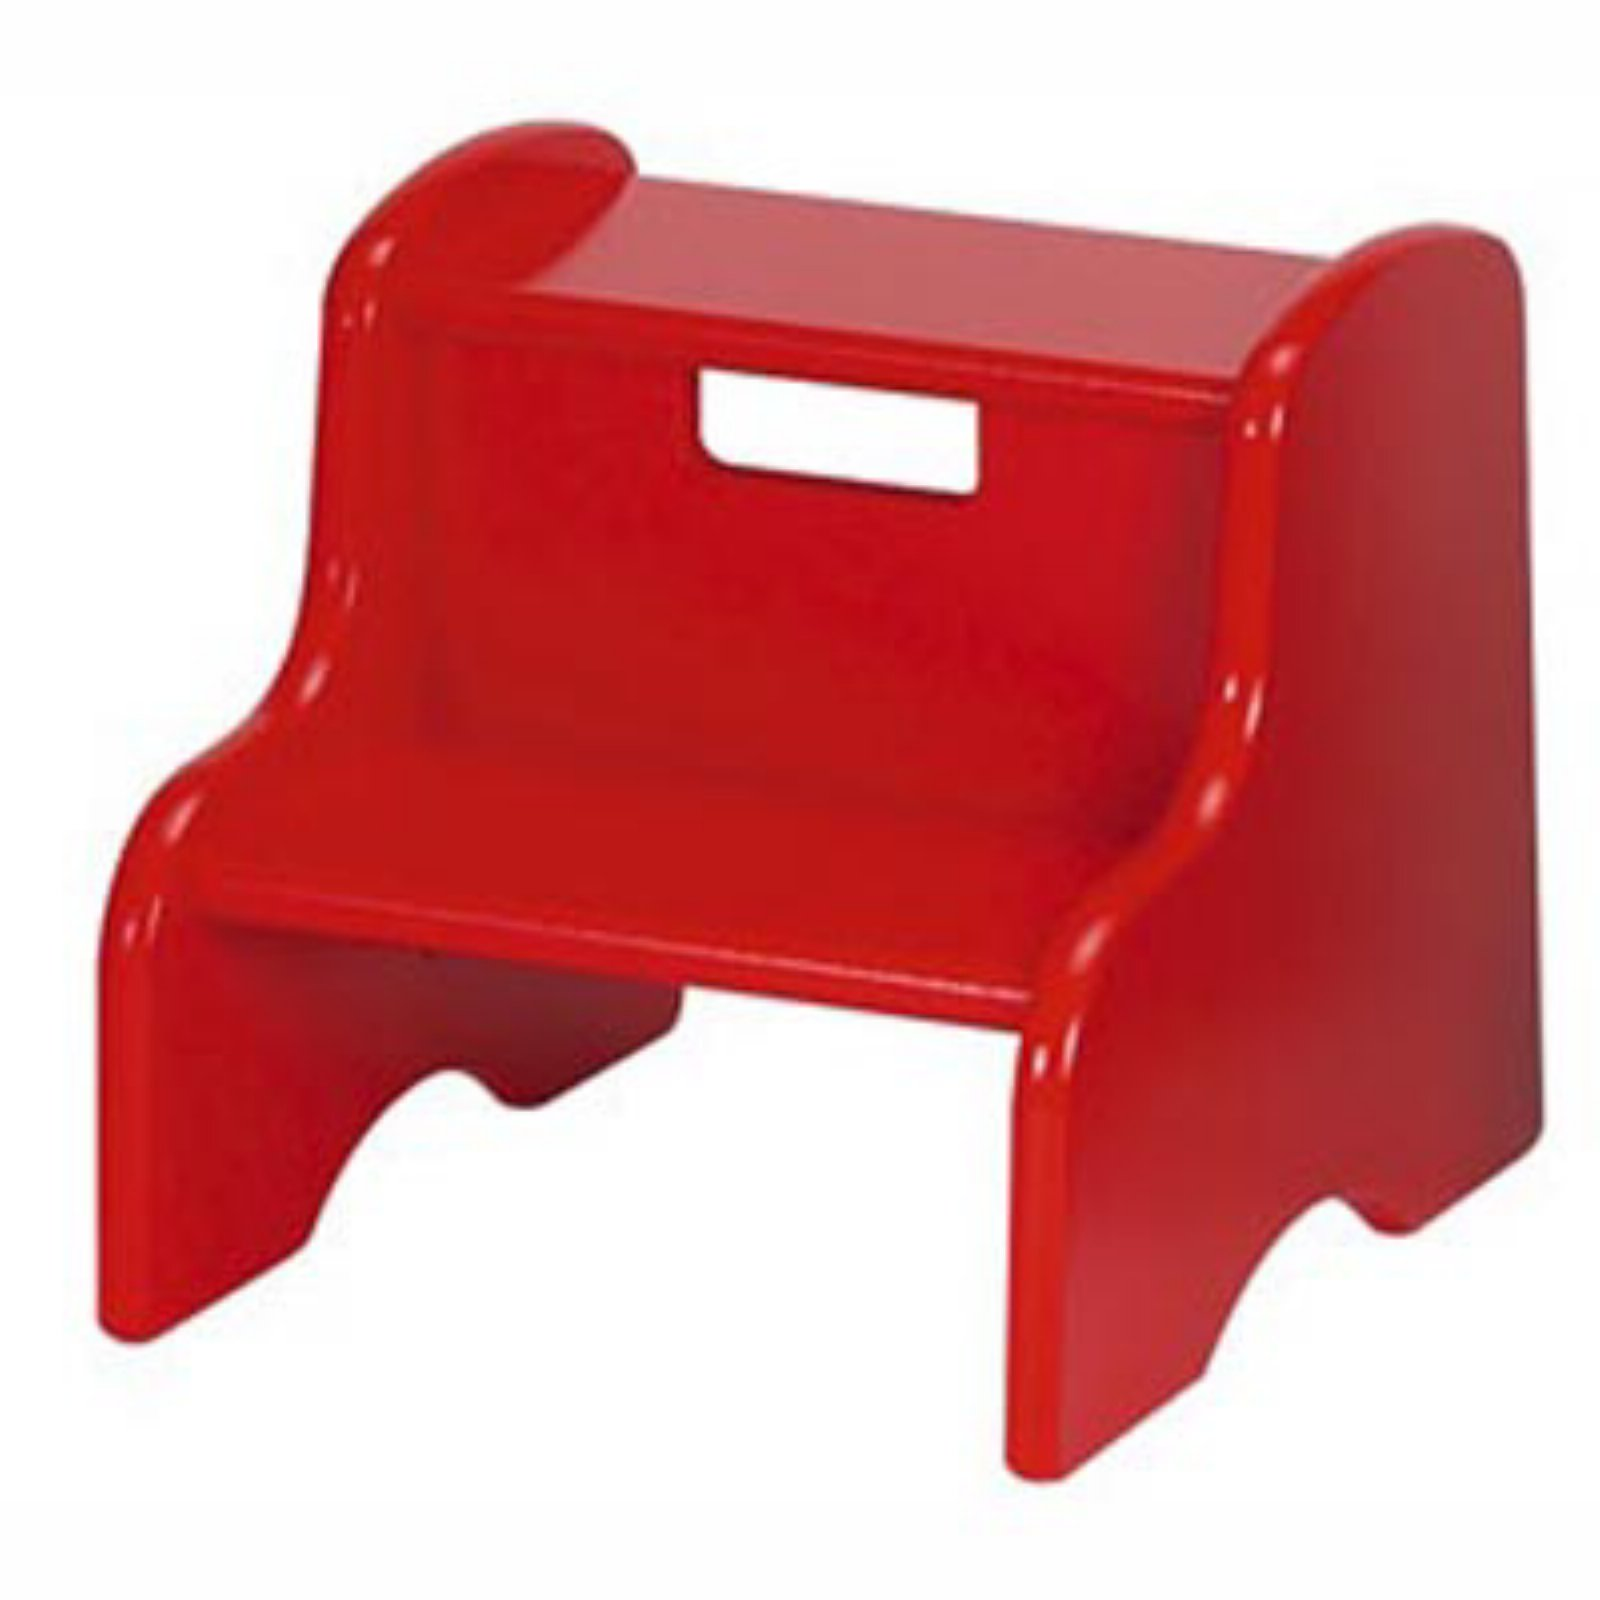 Fabulous Little Colorado Roma Kids Step Stool In 2019 Products Frankydiablos Diy Chair Ideas Frankydiabloscom